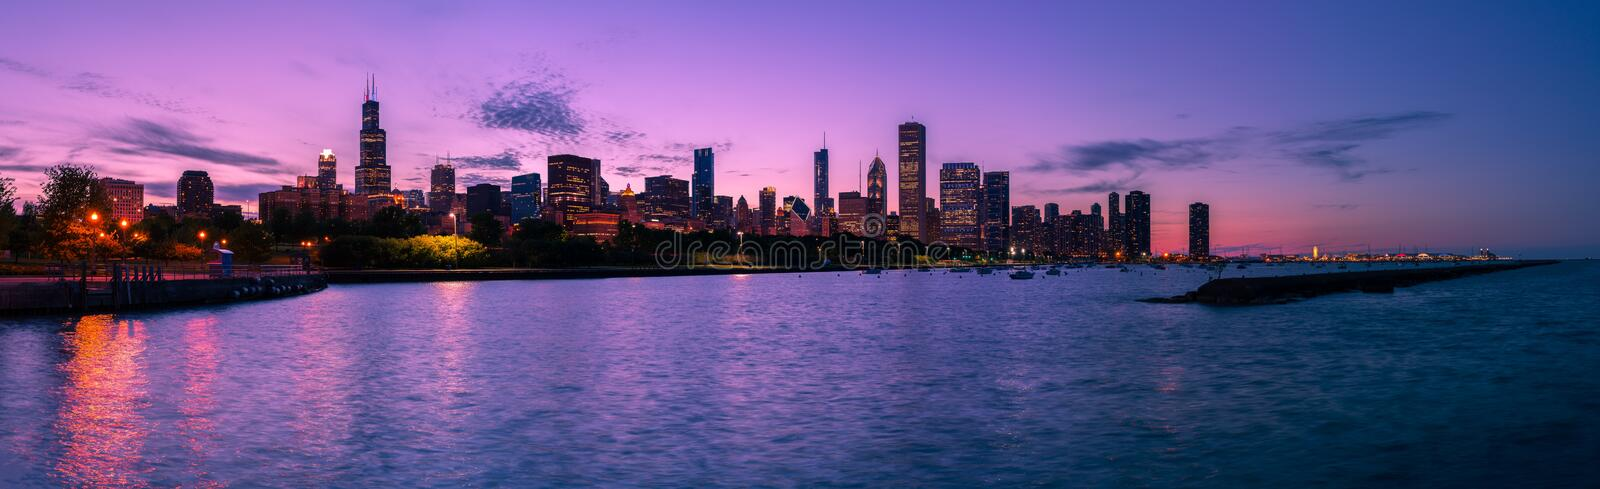 Download Chicago Skyline at Night stock photo. Image of sunset - 39502750